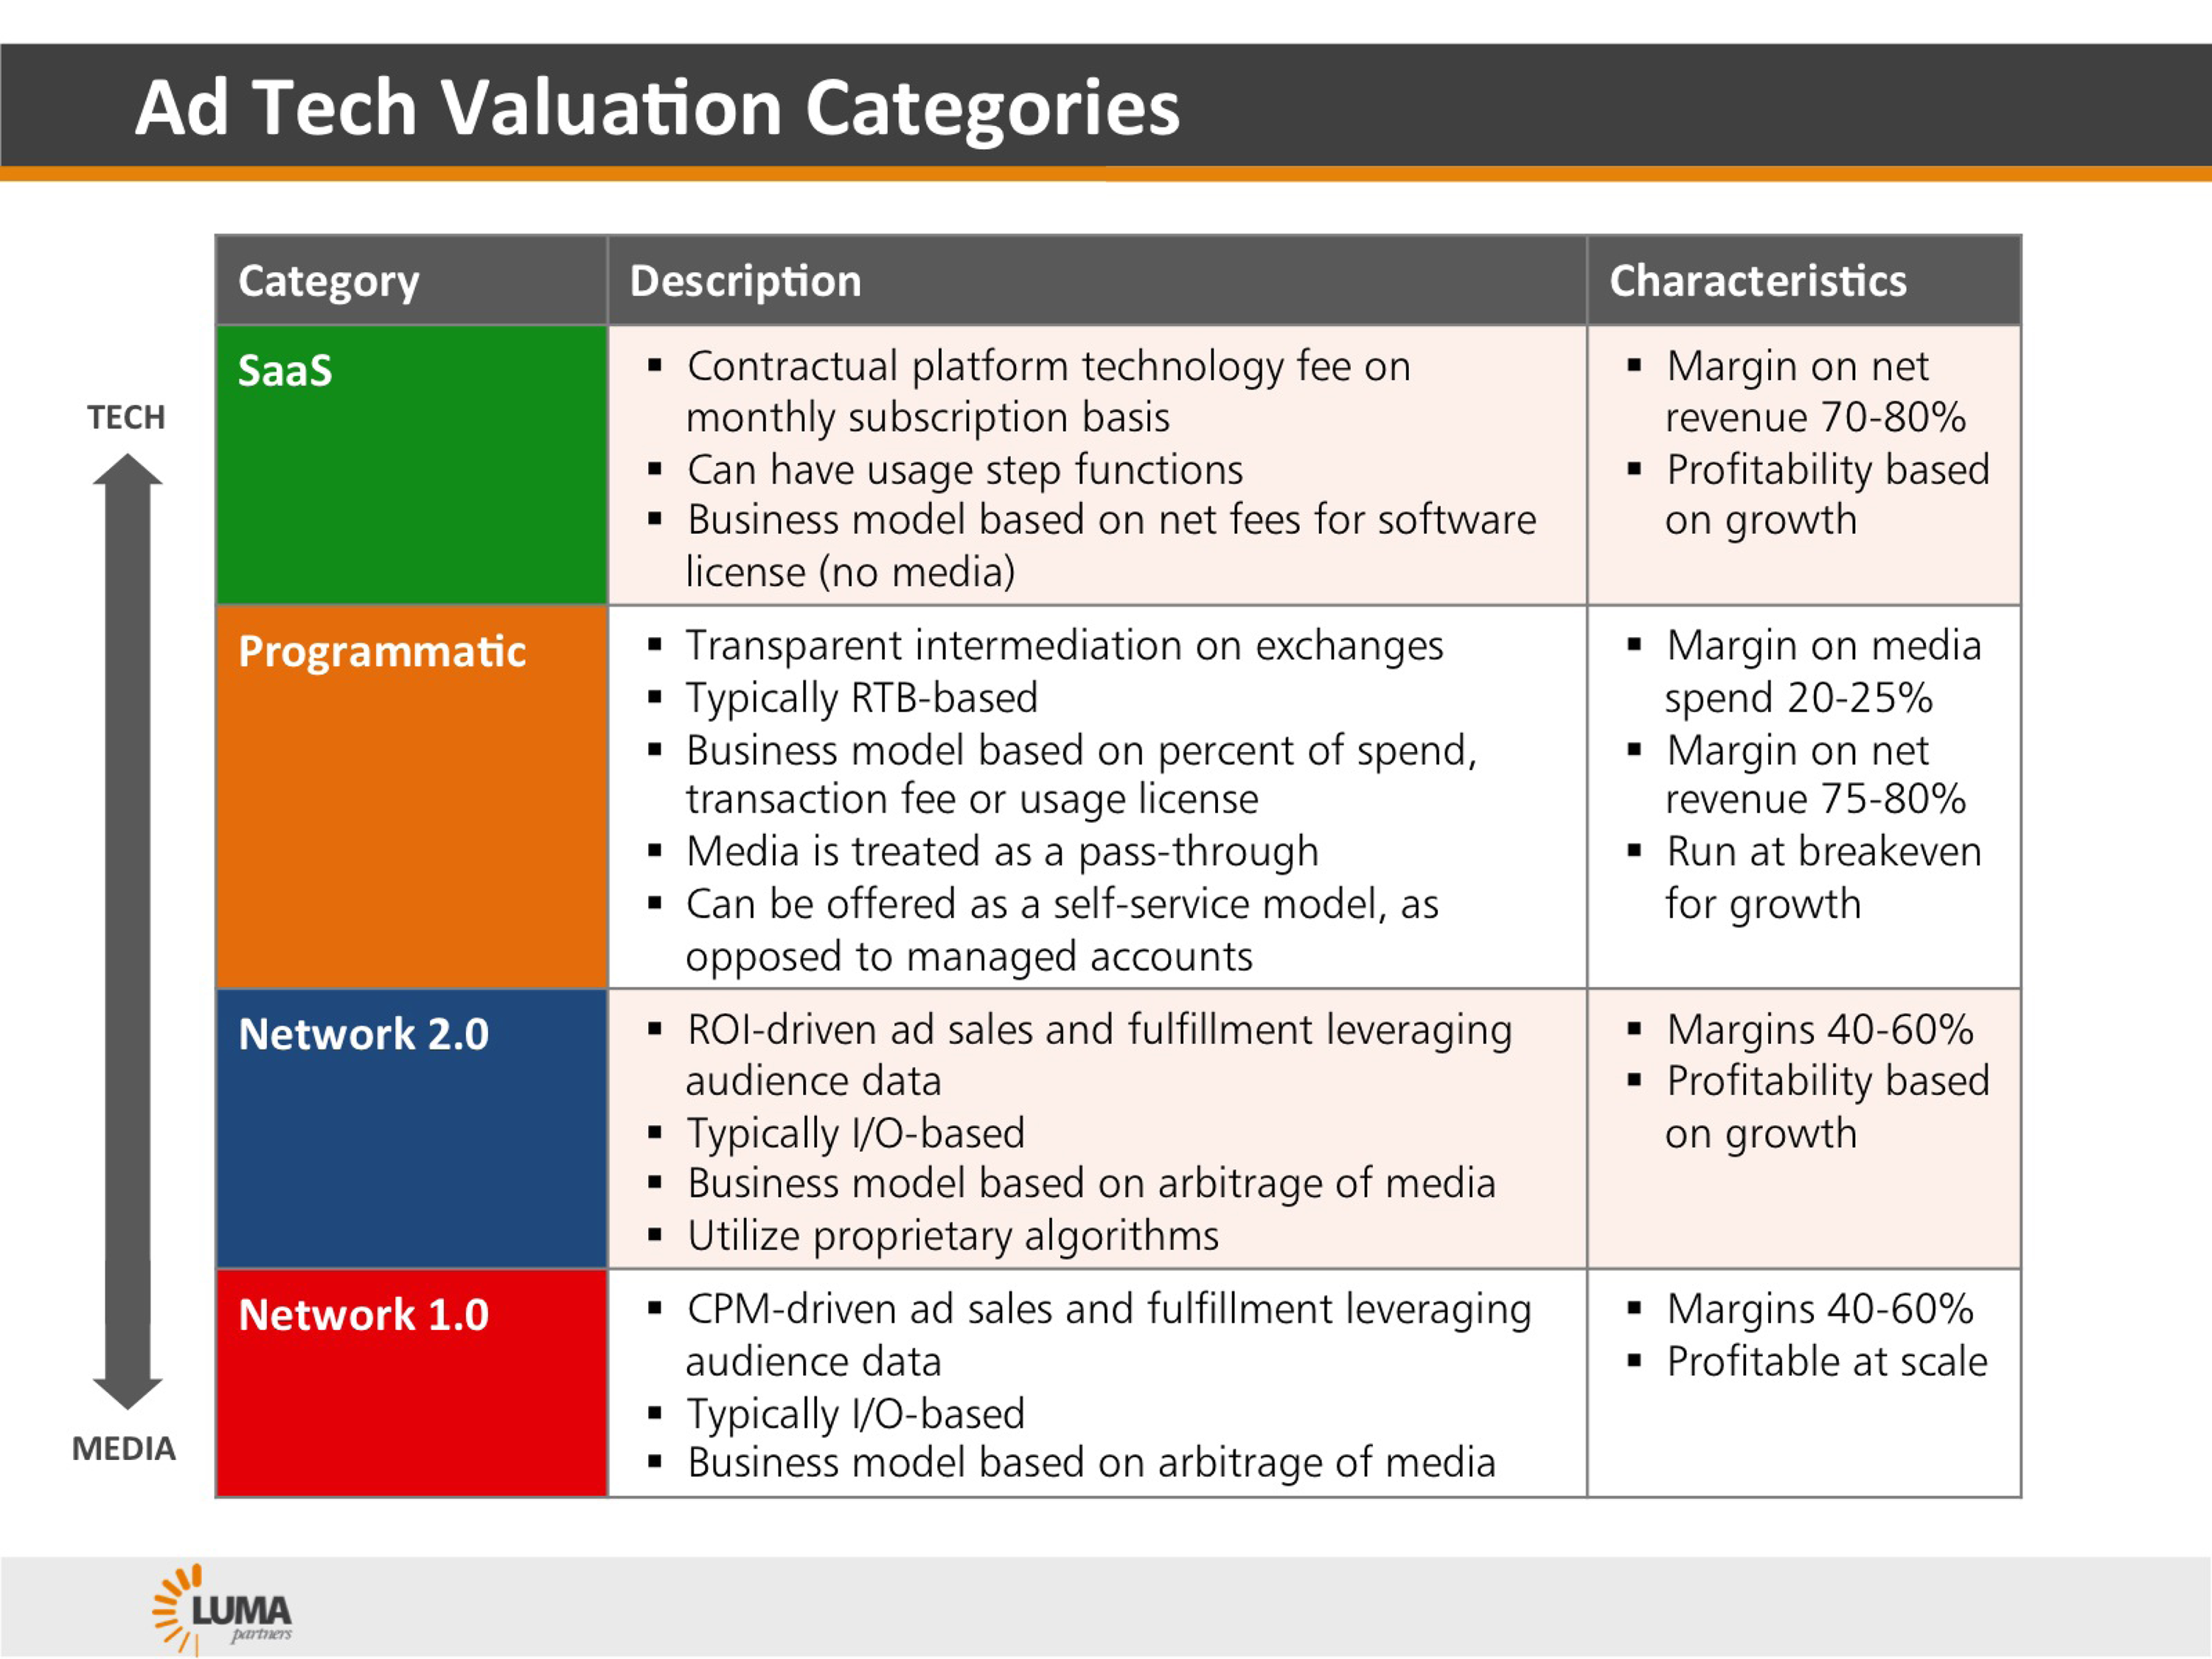 Ad Tech Valuation Categories  Market Segmentation